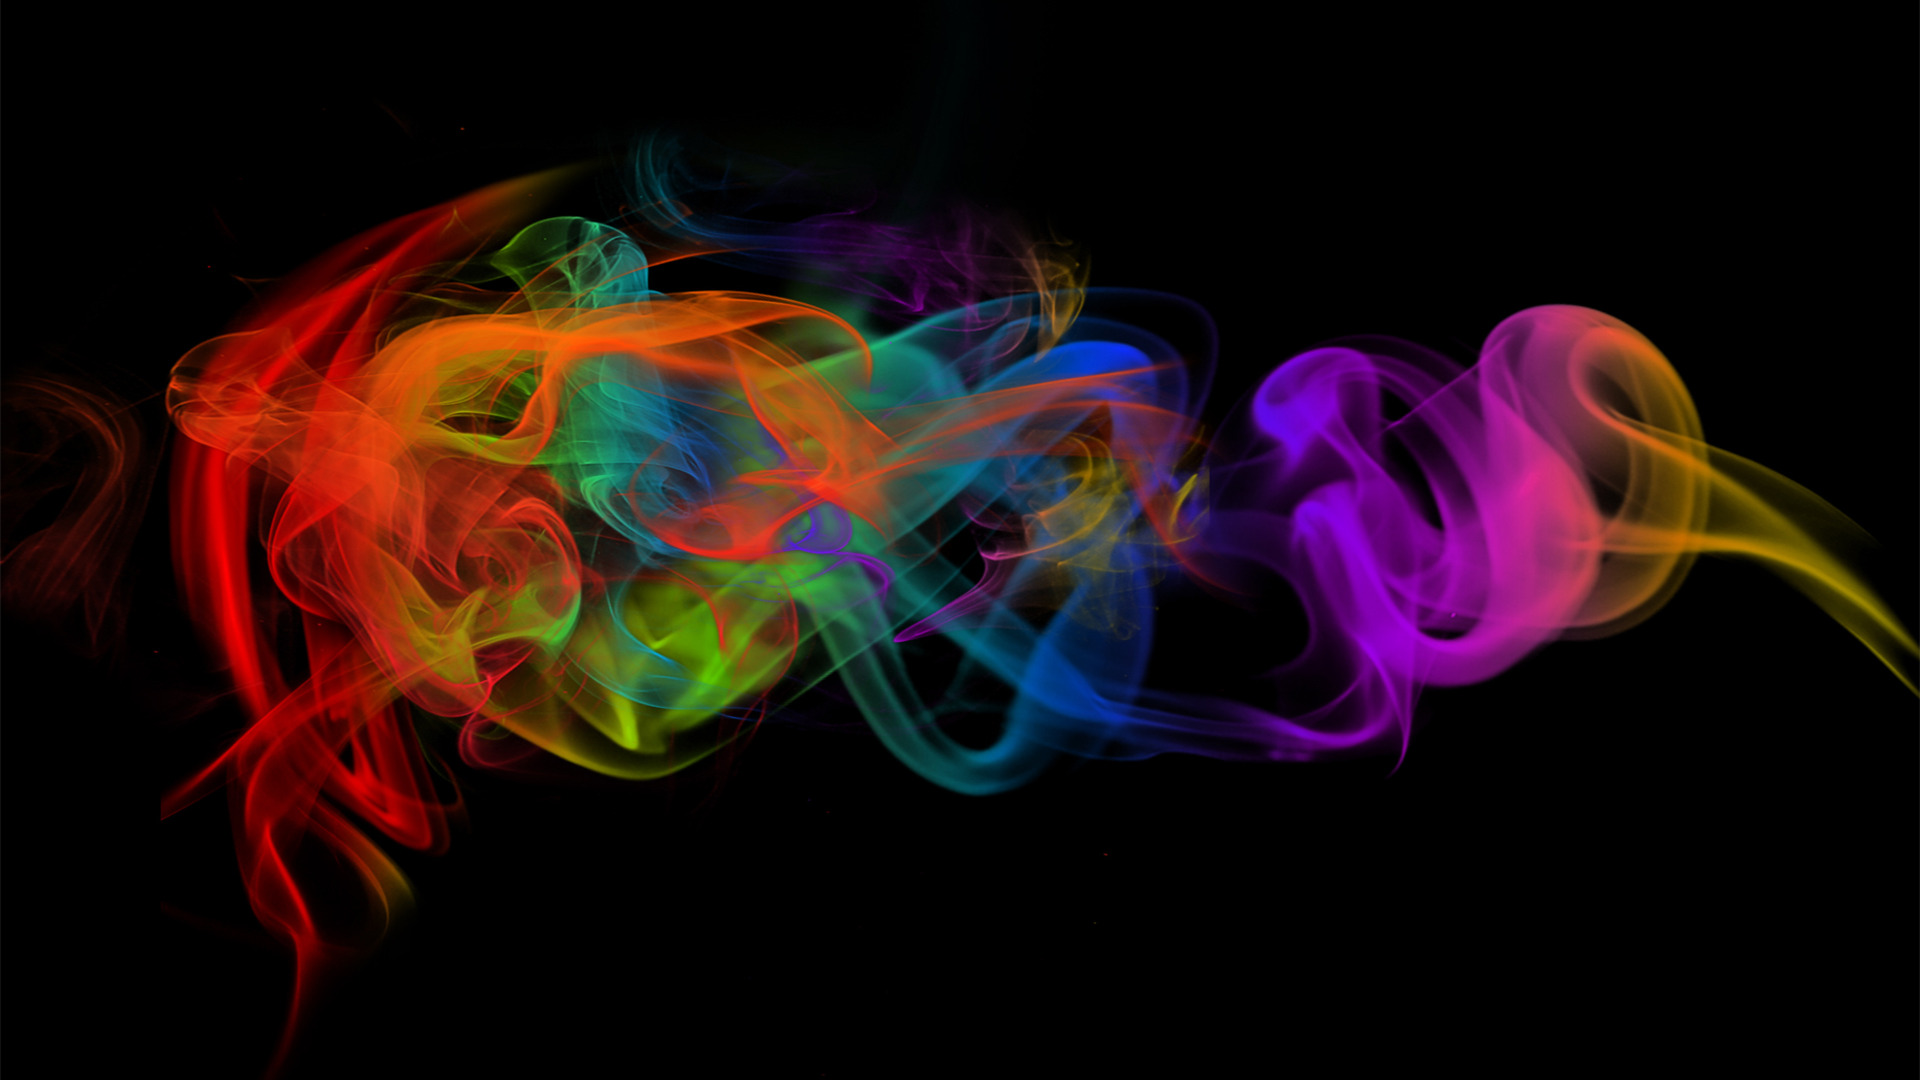 Colorful Smoke Wallpapers HD 1920x1080